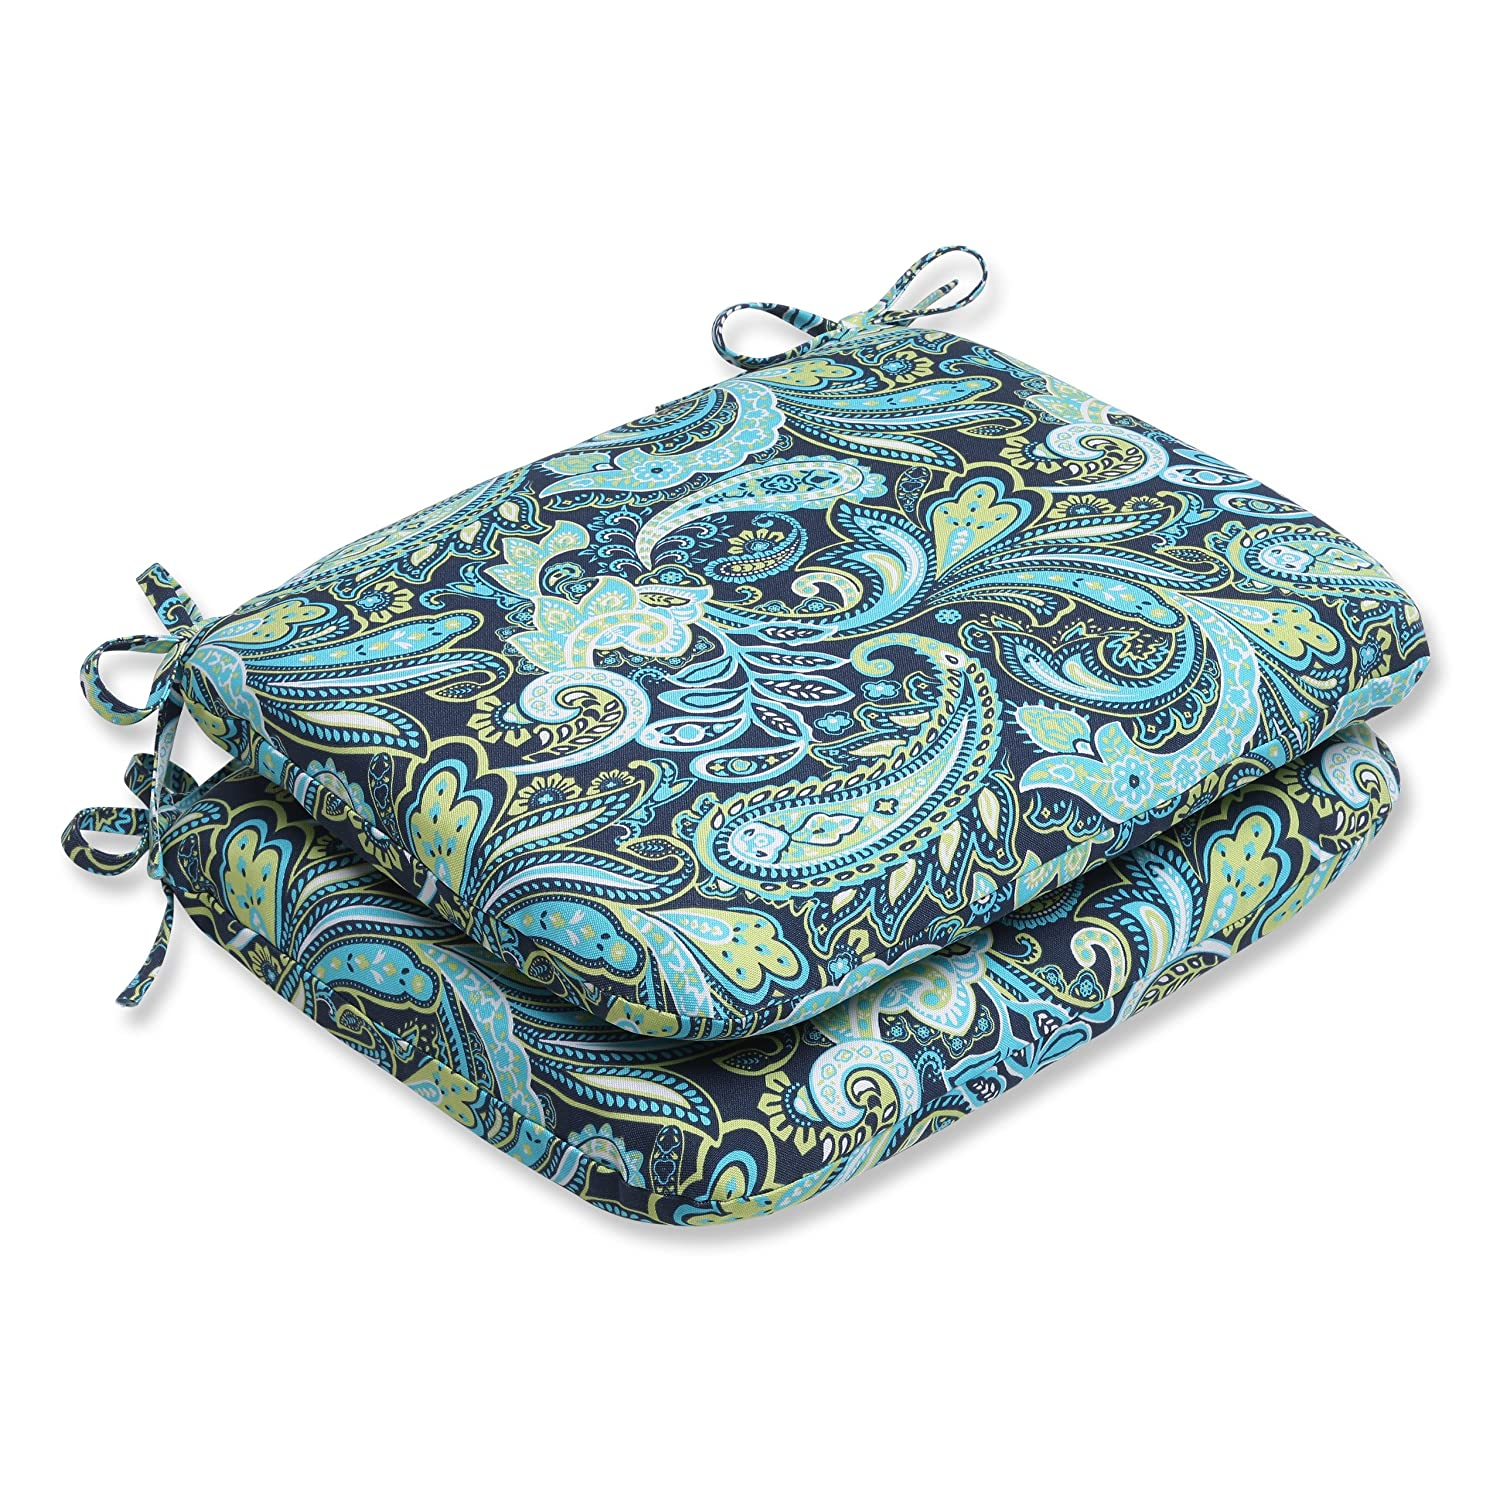 Pillow Perfect Outdoor Pretty Paisley Rounded Corners Seat Cushion, Navy, Set of 2